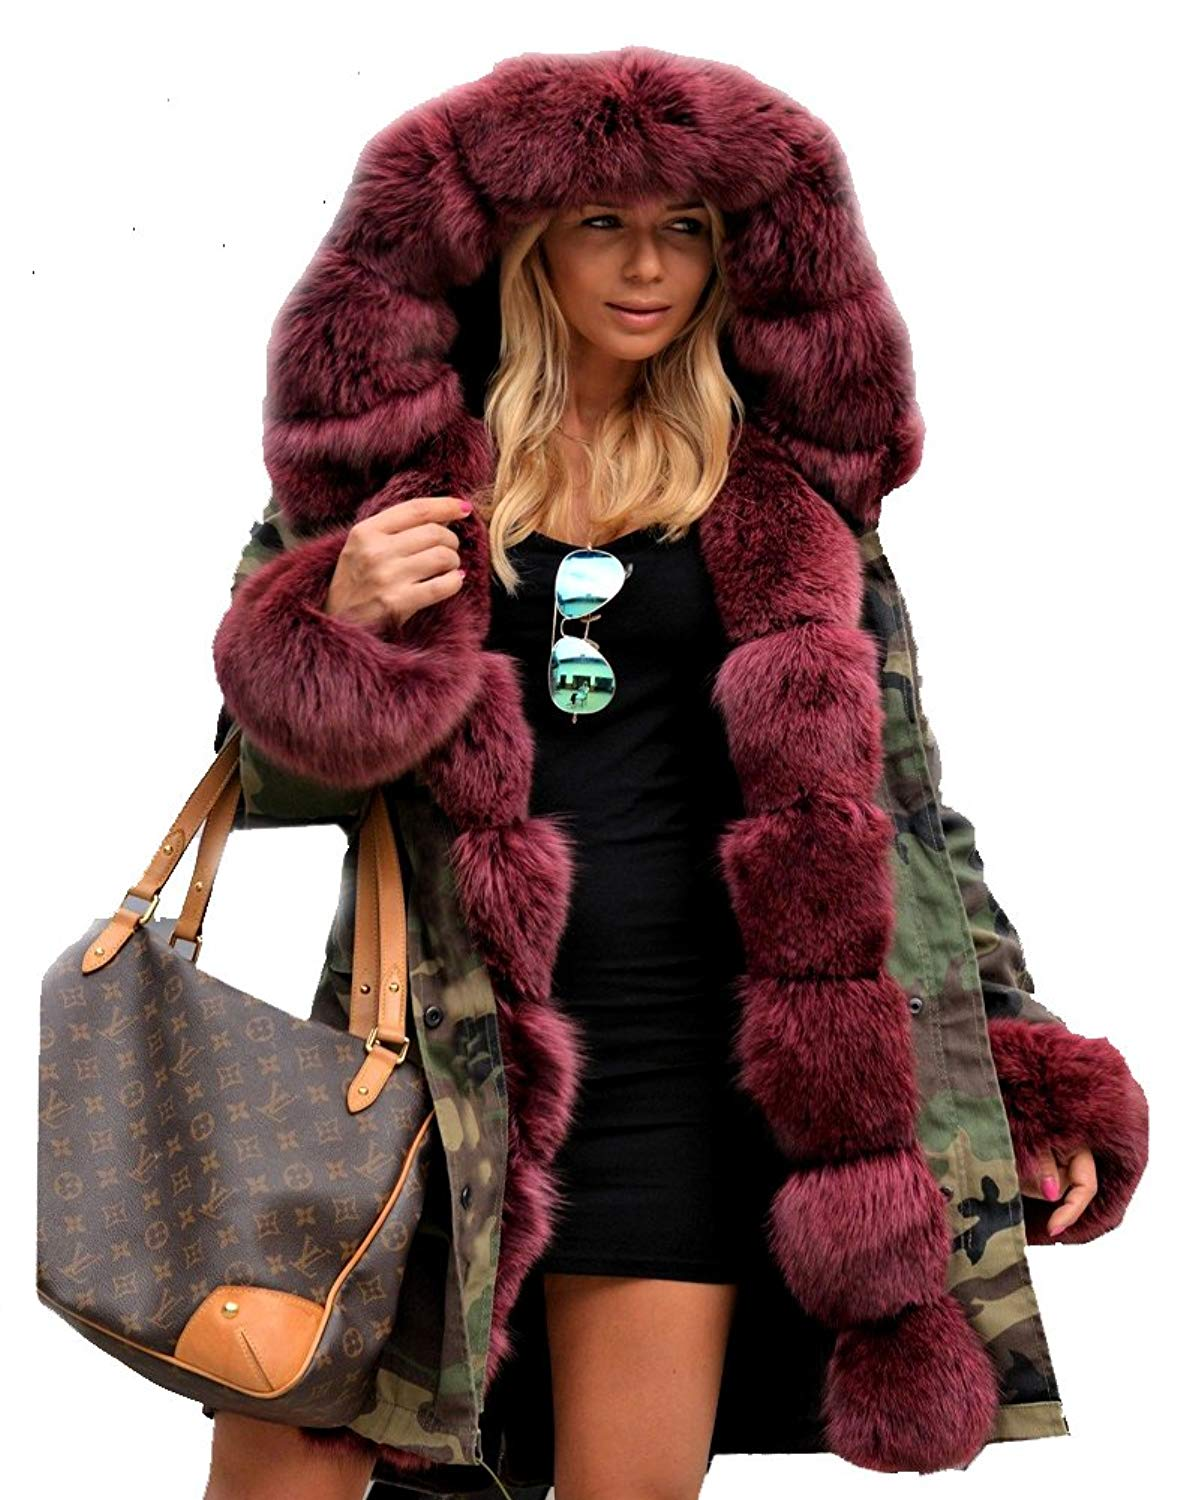 f4a823412b9ff Get Quotations · Roiii Thickened Wine Red Faux Fur Amry Green Camouflage  Parka Women Hooded Fishtail Winter Jacket Overcoat